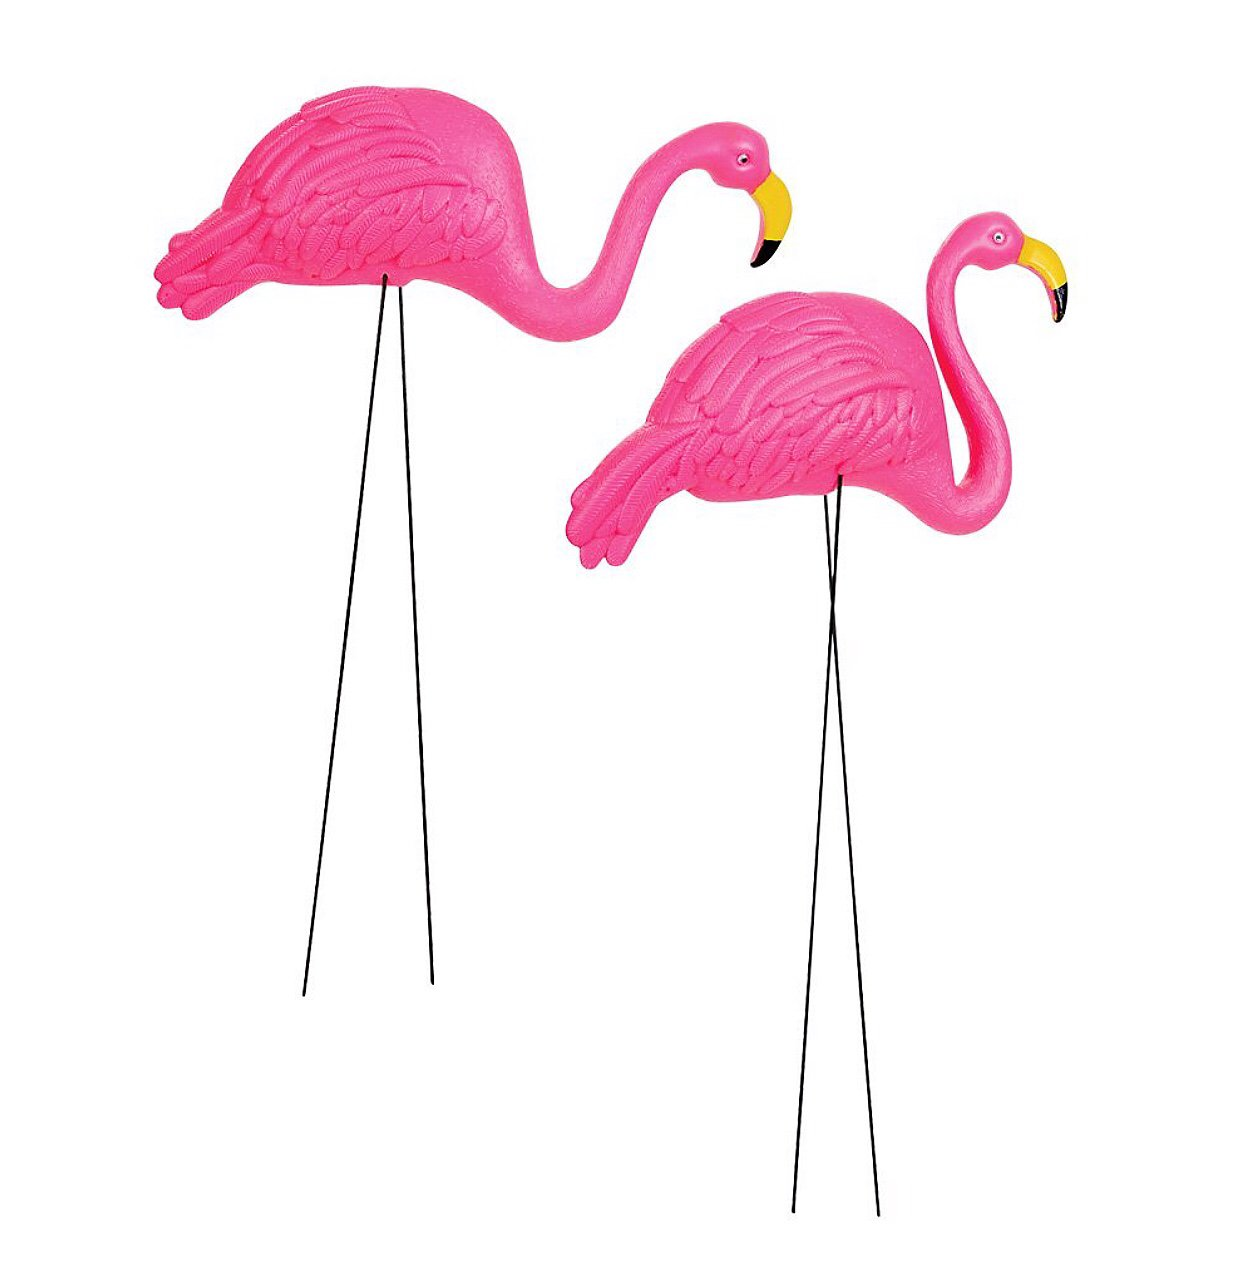 GiftExpress Pack of 2, Large Bright Pink Flamingo Yard Ornament/Flamingo Lawn Ornaments/Ink Flamingo Garden Yard Stakes by GiftExpress